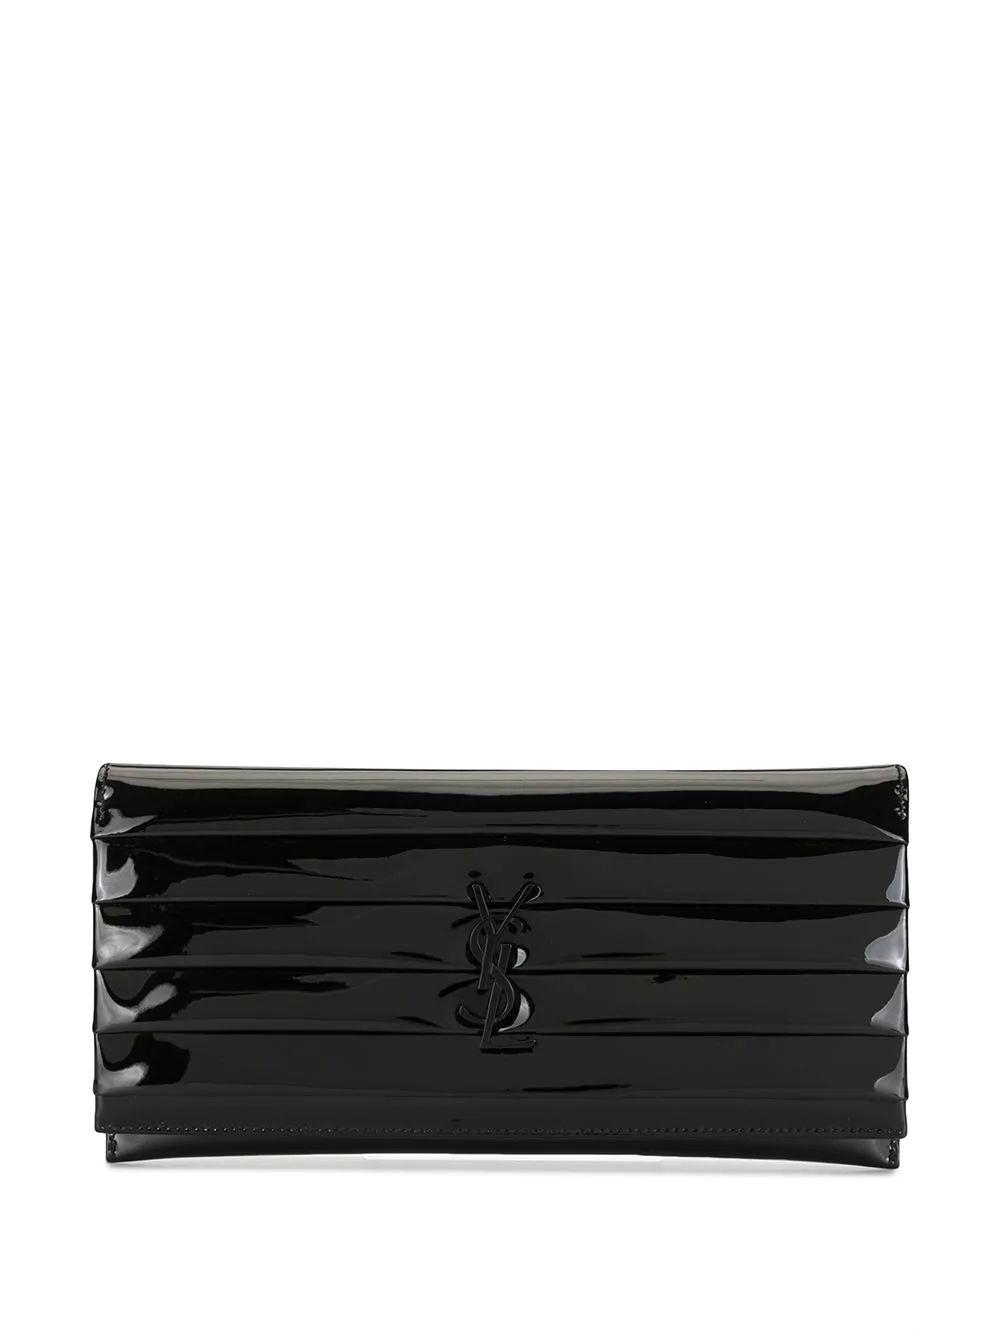 Small Patent Clutch